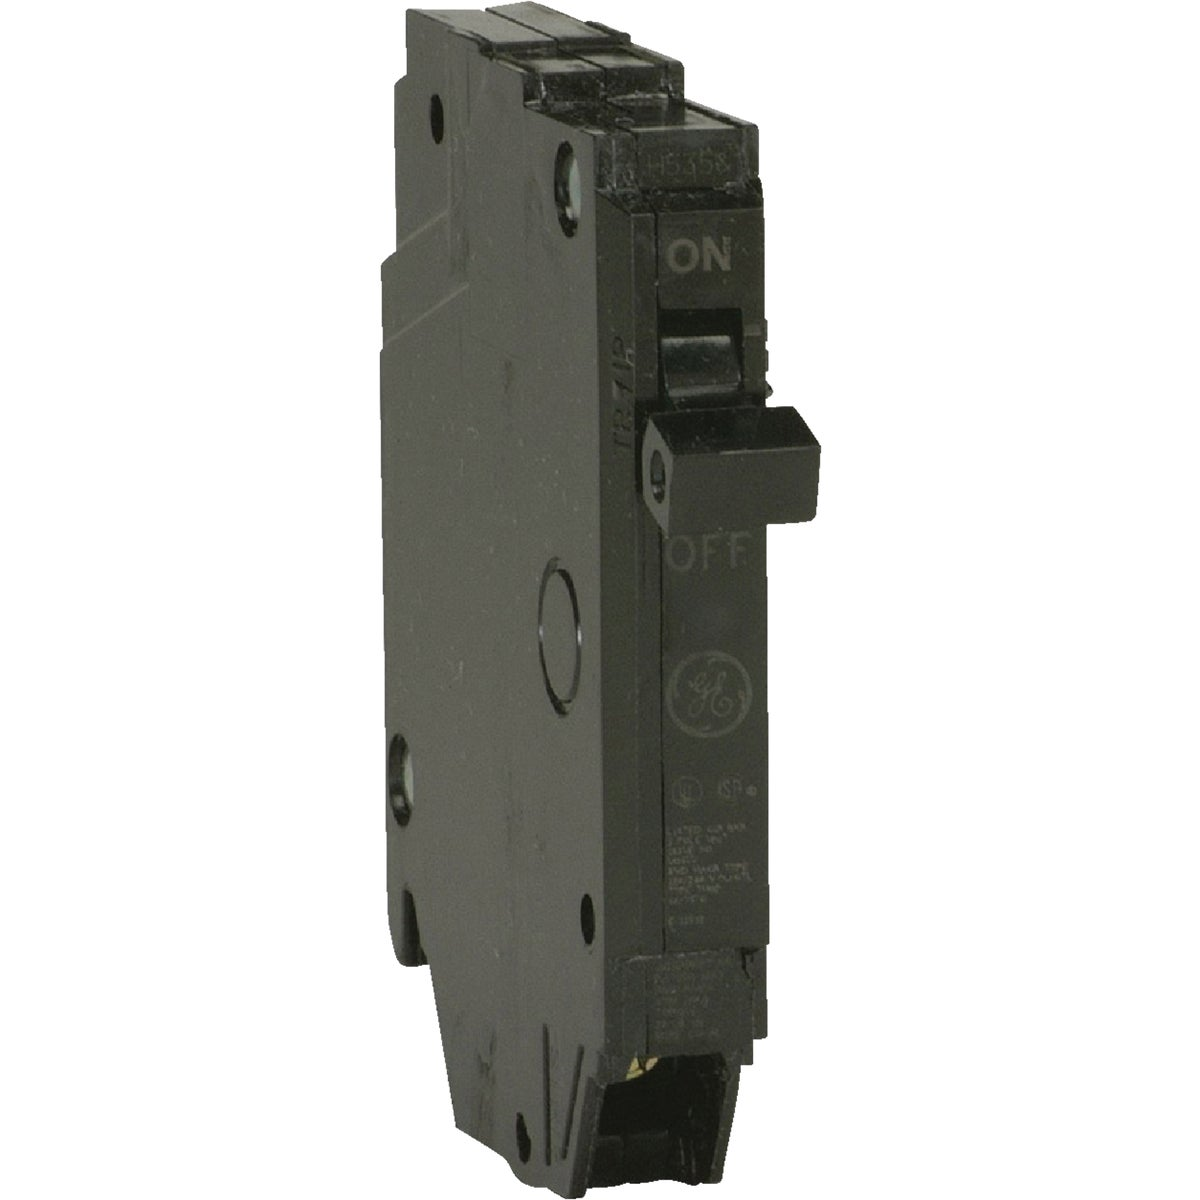 30A SP CIRCUIT BREAKER - THQP130 by G E Industrial